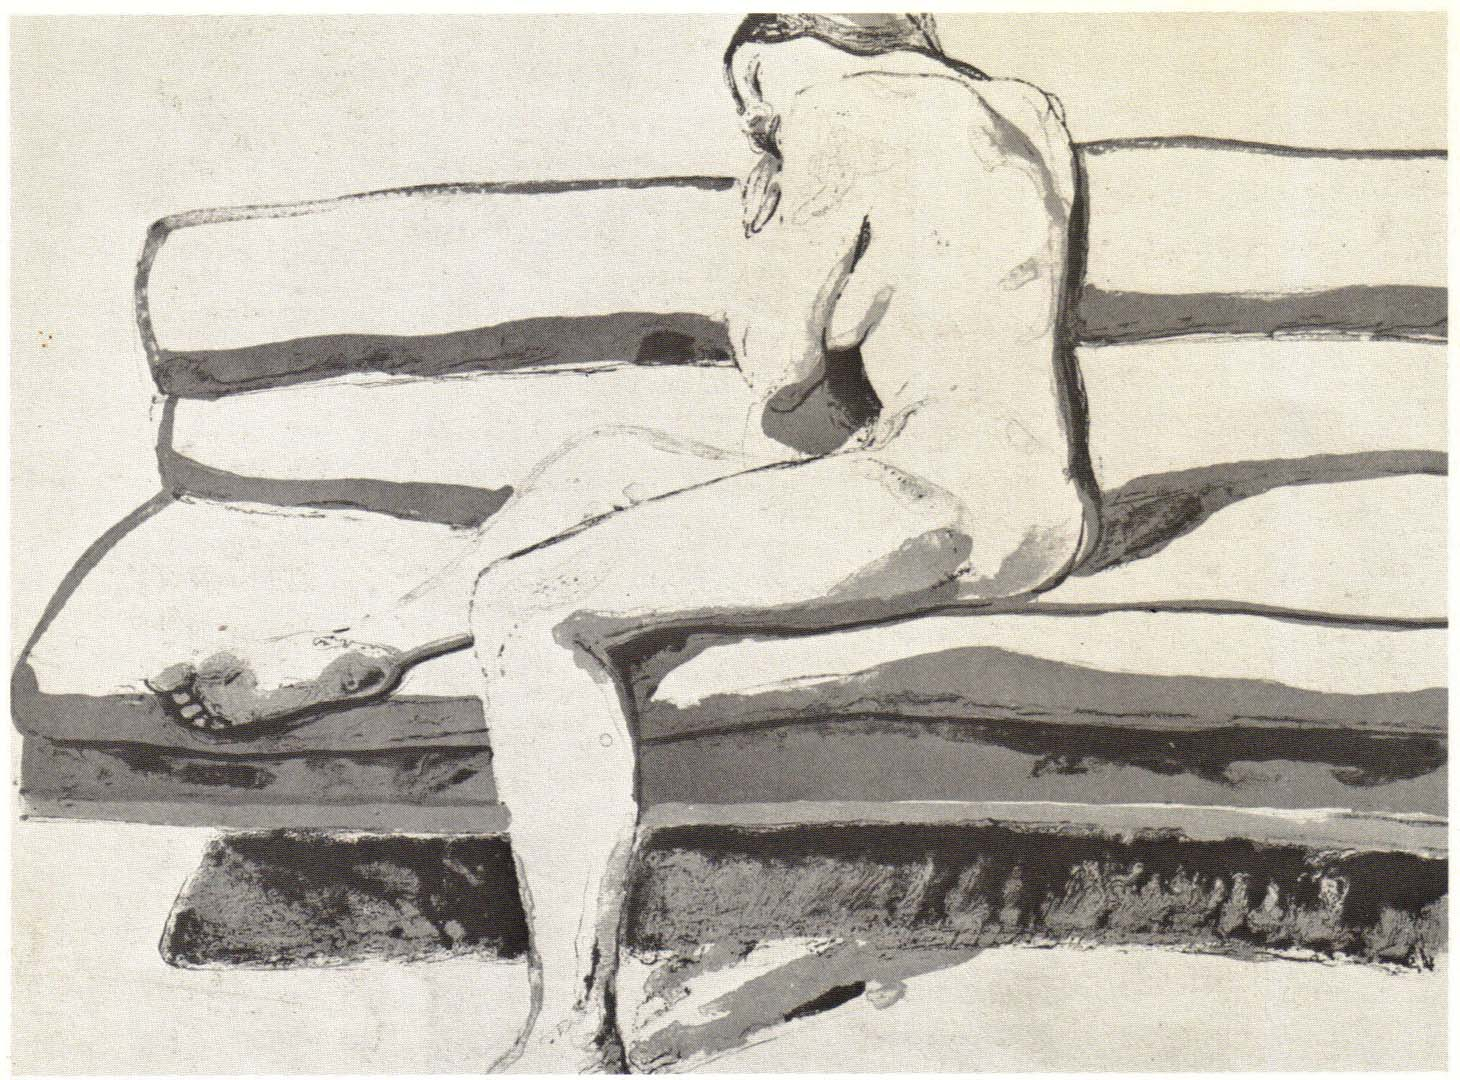 1969 Nude on Couch Lithograph on Paper 22 x 30